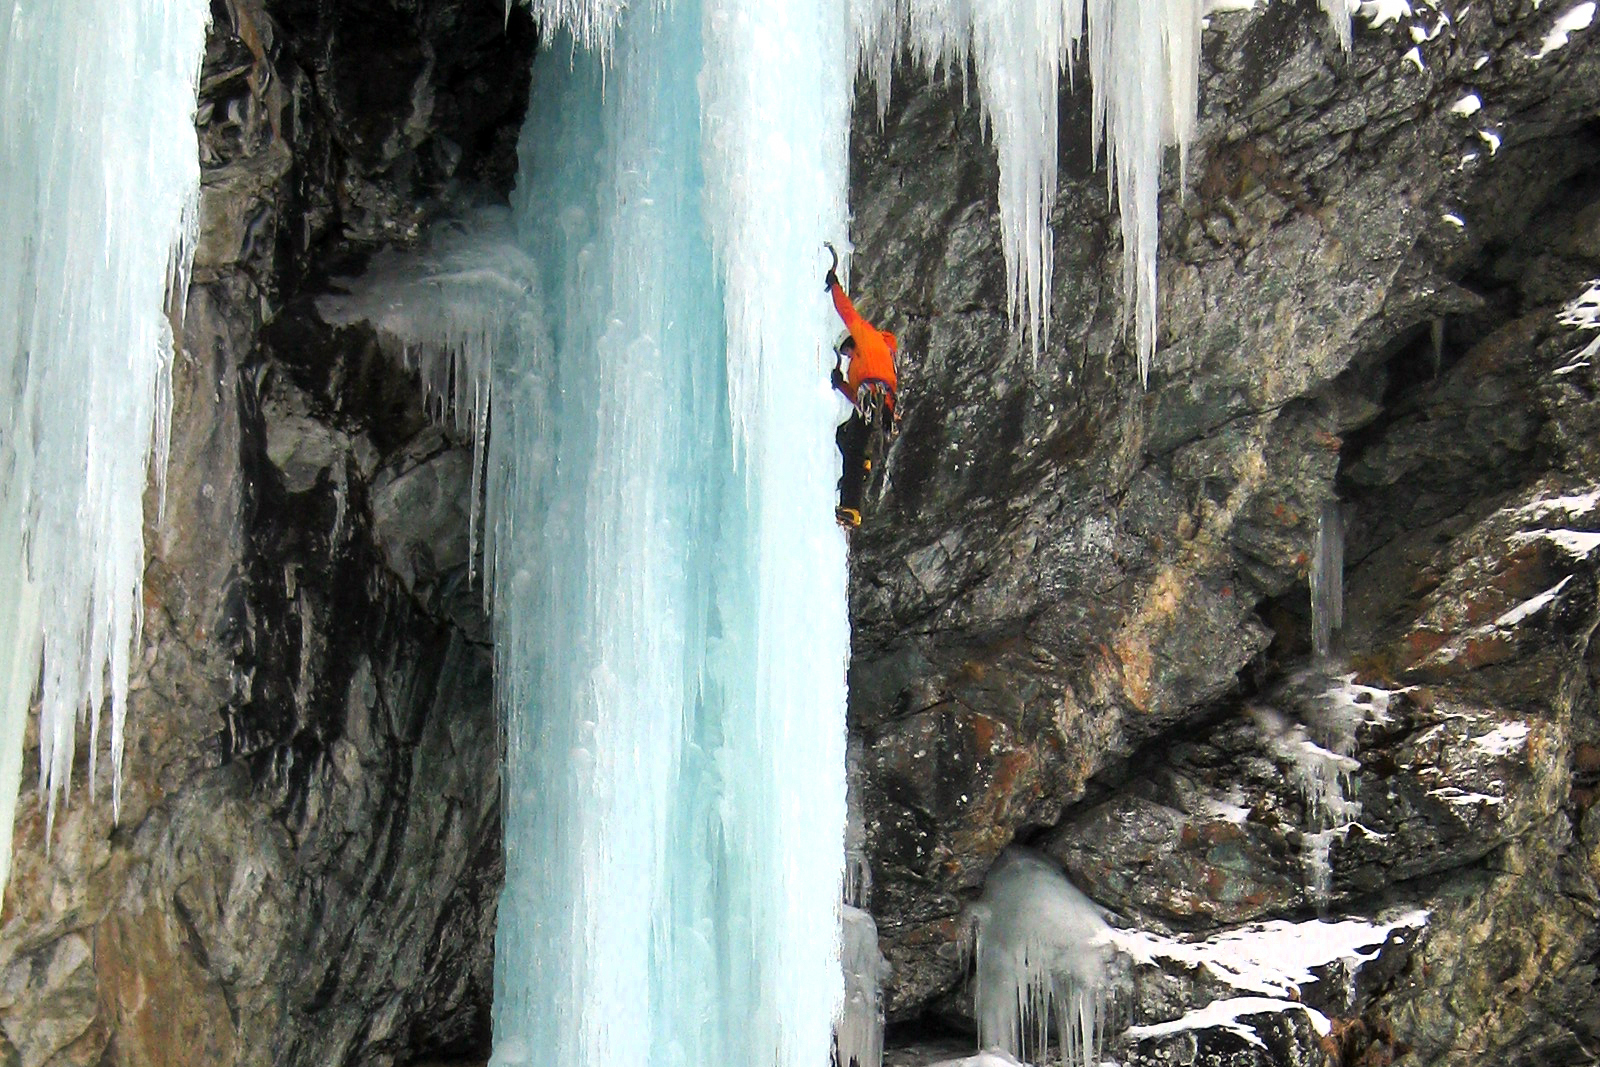 Calendrier sorties - Cascade de glace initiation